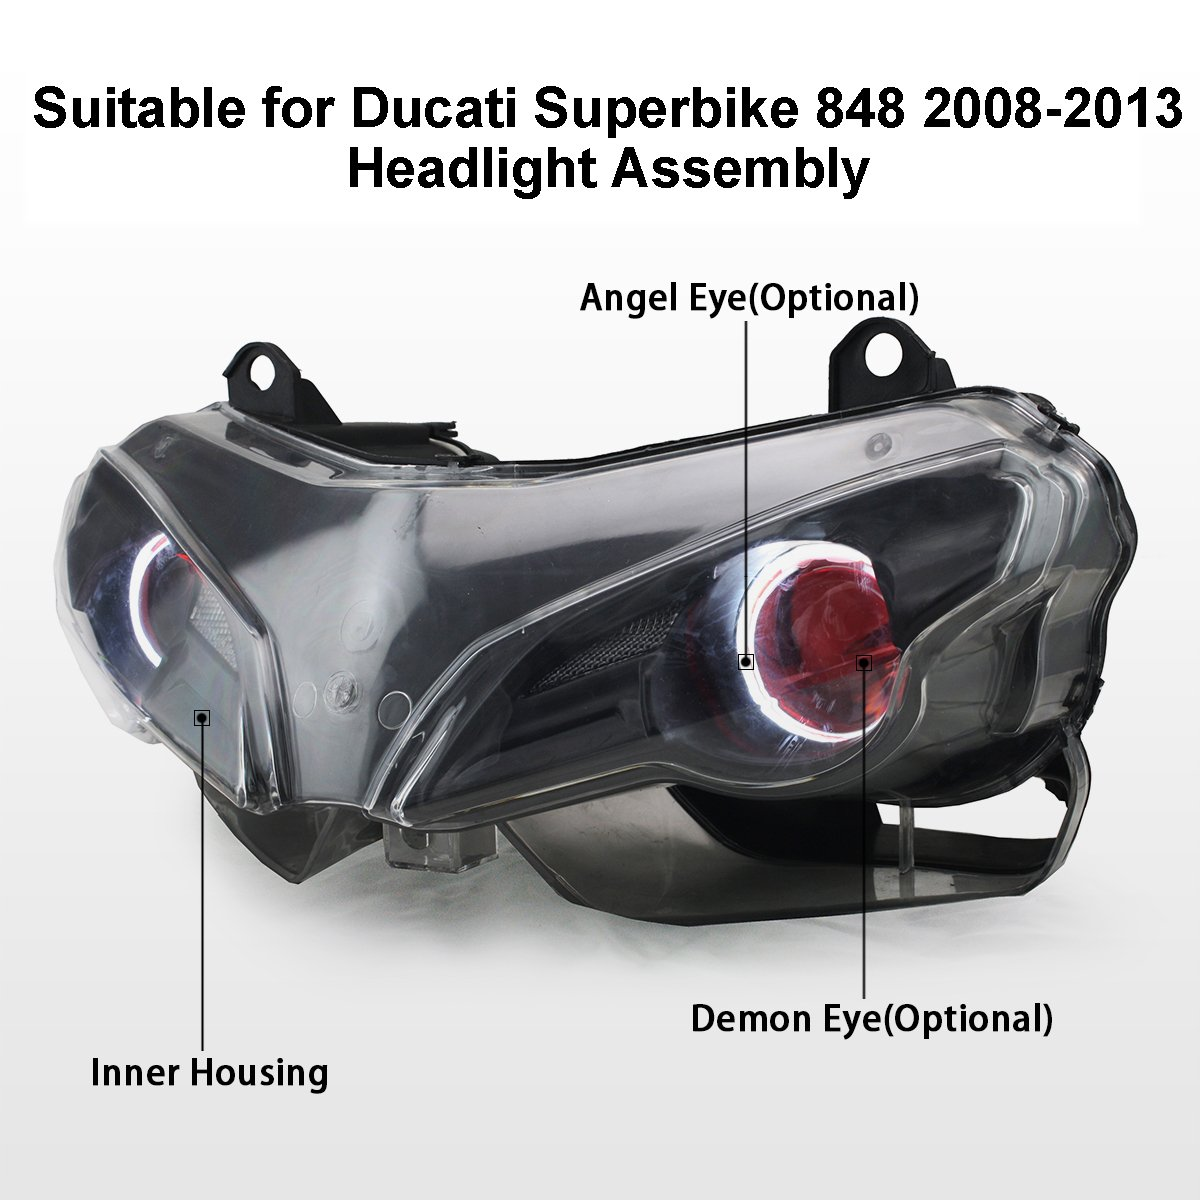 Kt Led Angel Eye Headlight Assembly For Ducati Superbike 2008 848 Wiring Diagram 2013 Red Demon Automotive